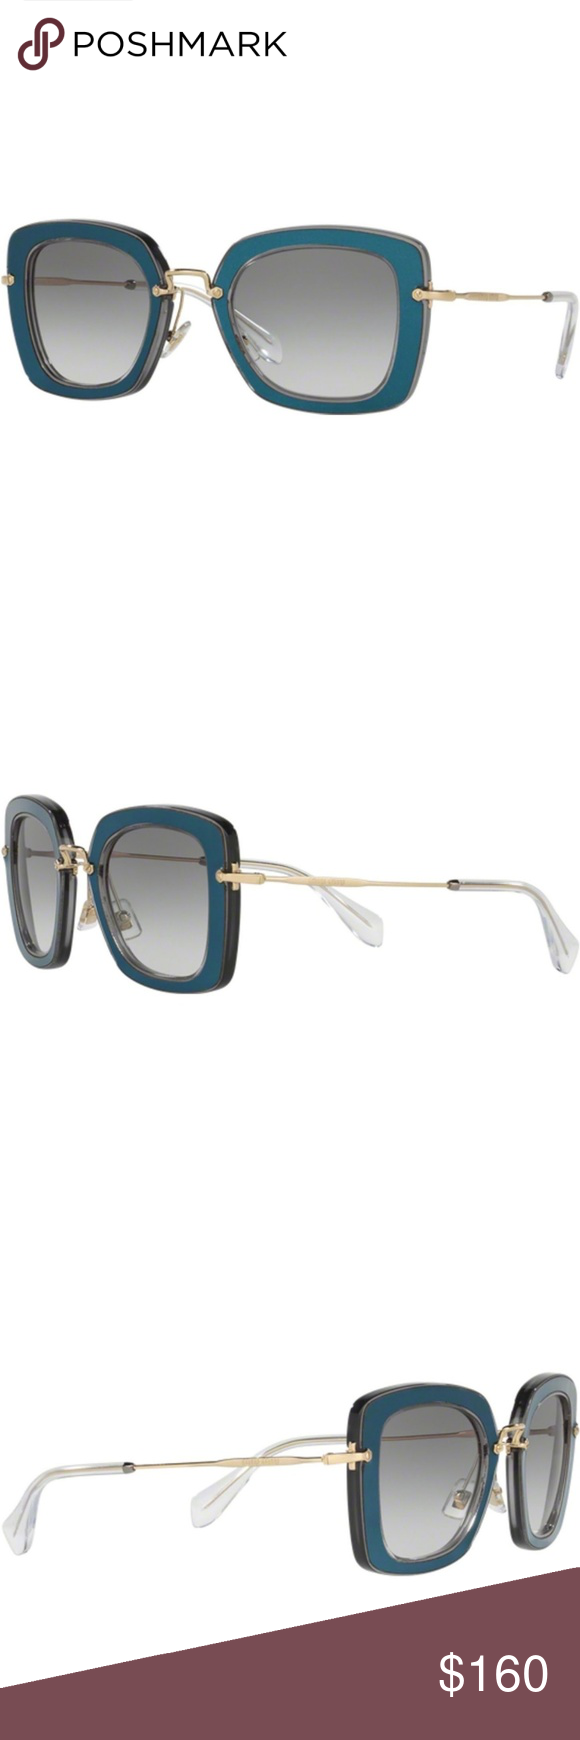 f620d5167fca Miu Miu Rectangular Sunglasses by Prada Blue  Gray 100% Authentic Miu Miu  Women s Sunglasses are a masterpiece of creativity and authenticity in  every pair.